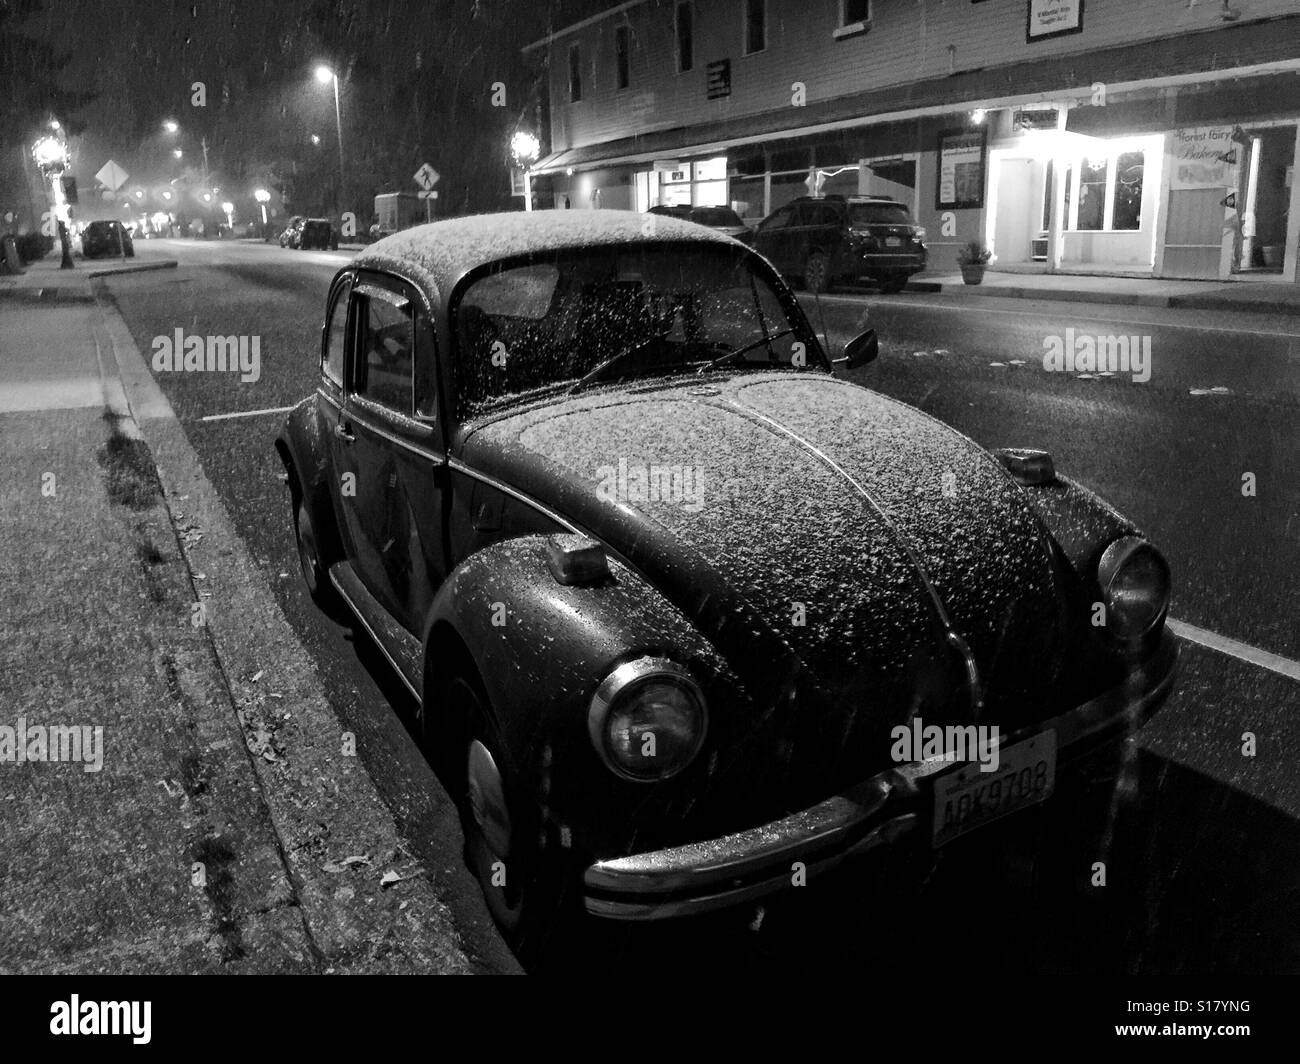 Vintage WV beetle on the street in Issaquah, WA, under the snow - Stock Image